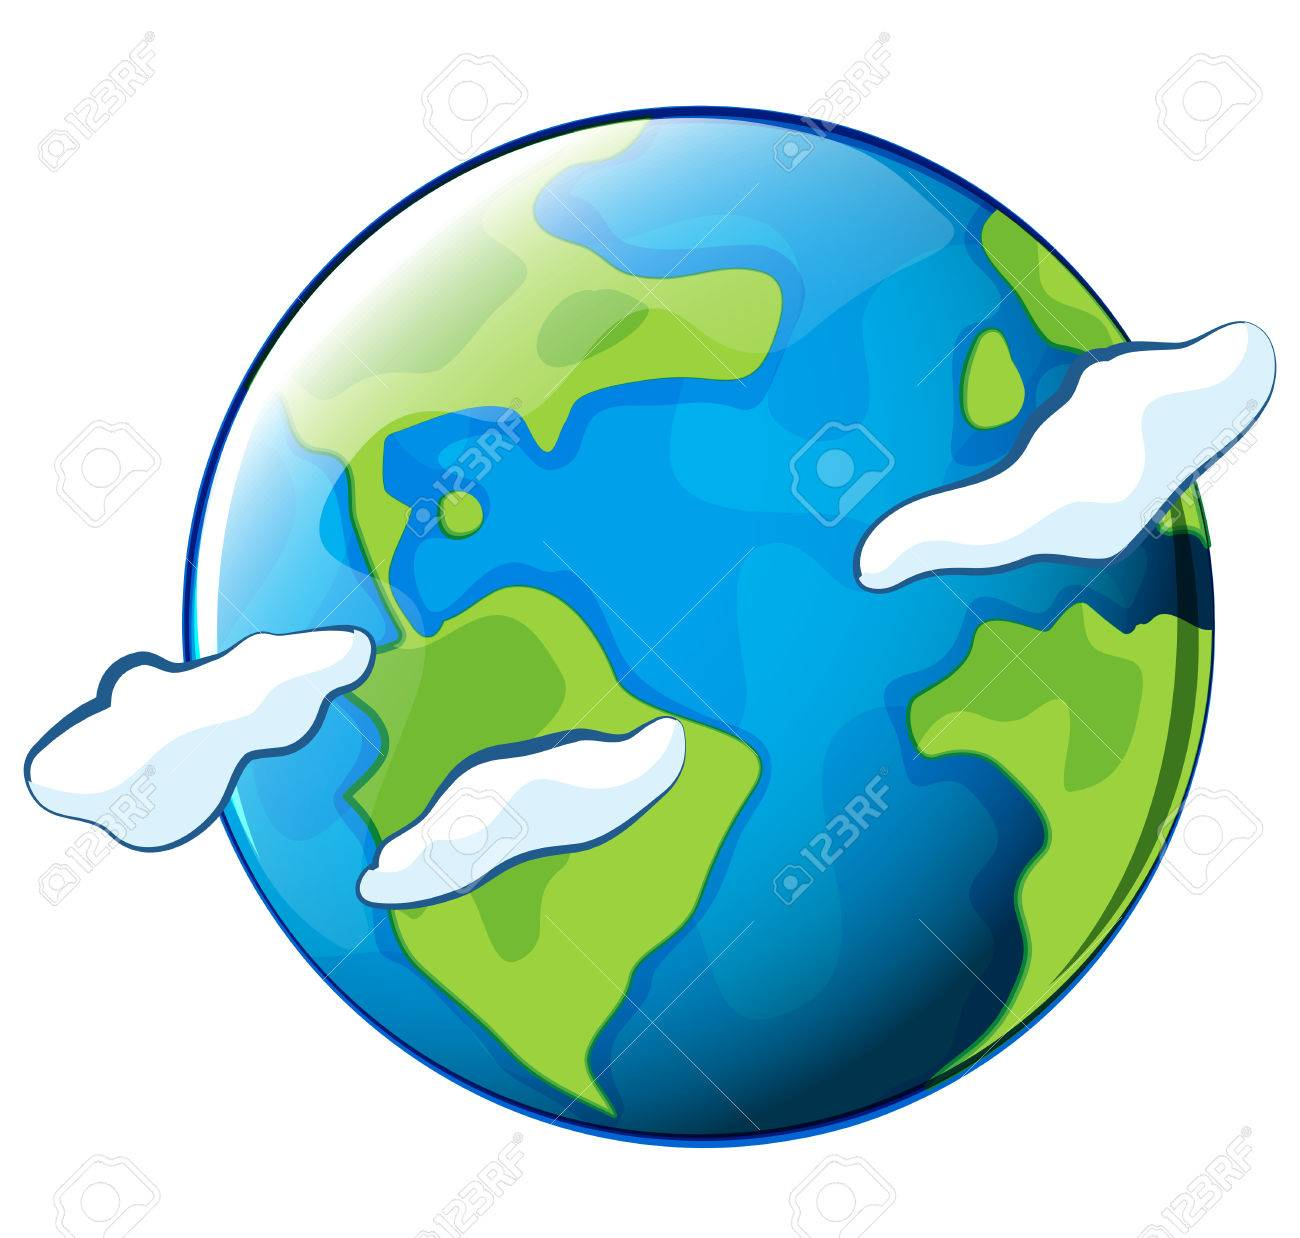 Illustration Of The Planet Earth On A White Background Royalty Free Cliparts Vectors And Stock Illustration Image 30260815